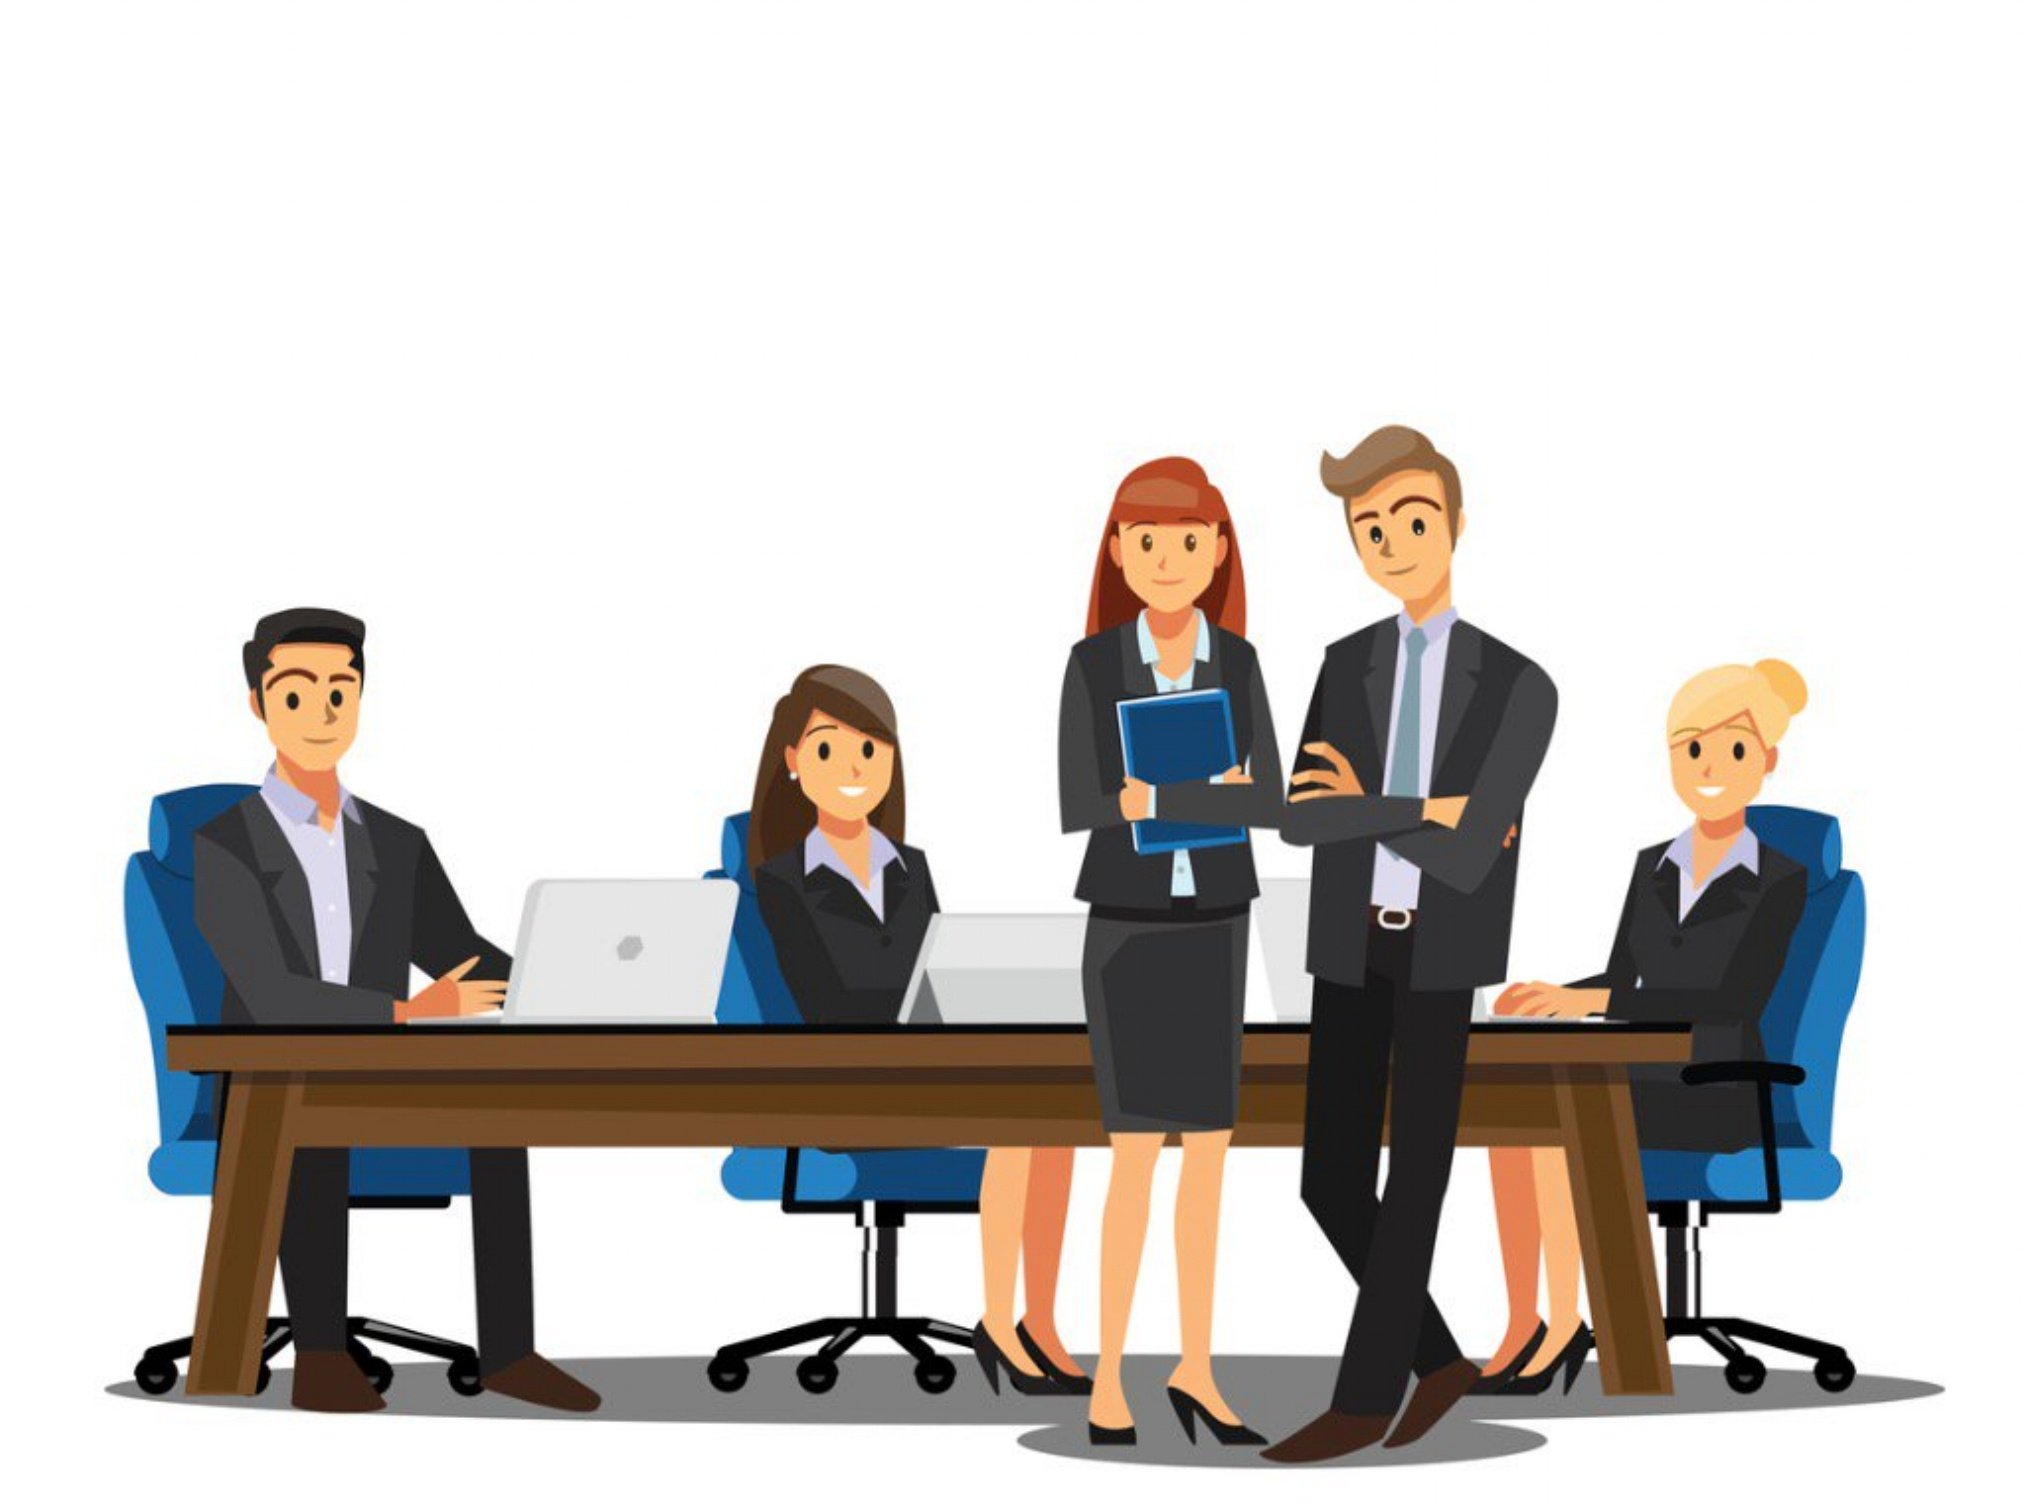 business-people-teamwork-vector-illustration-cartoon-character-vector-id824226658-731231-edited